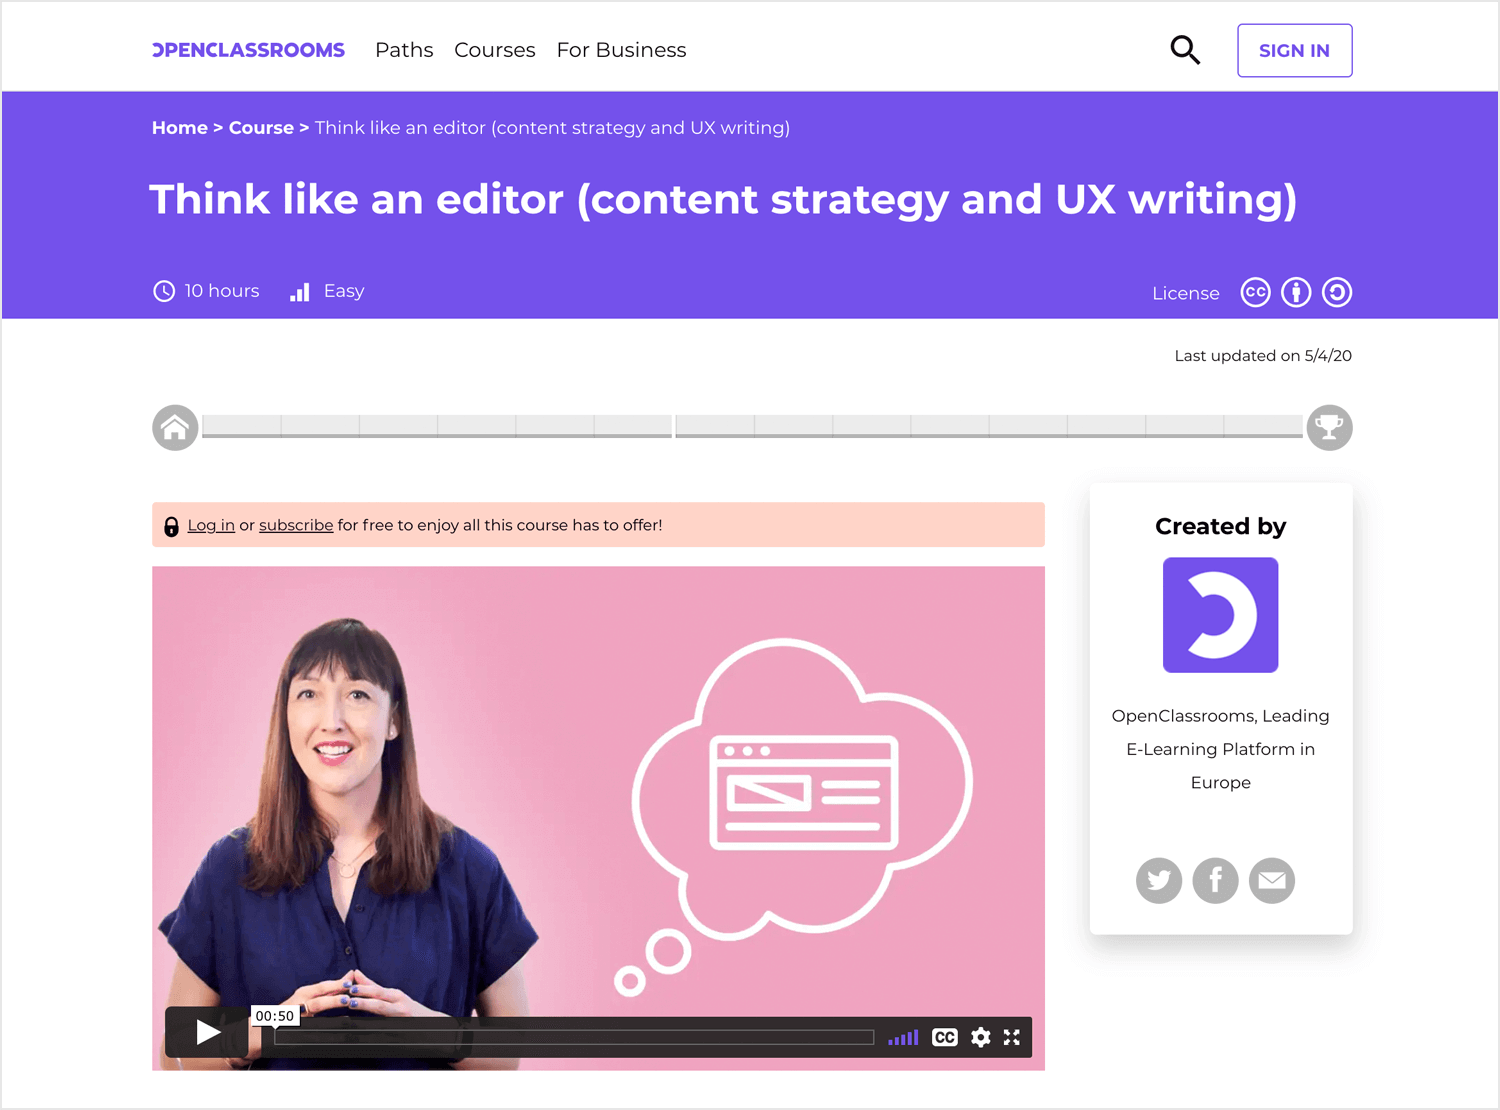 UX writing course - Think like an editor